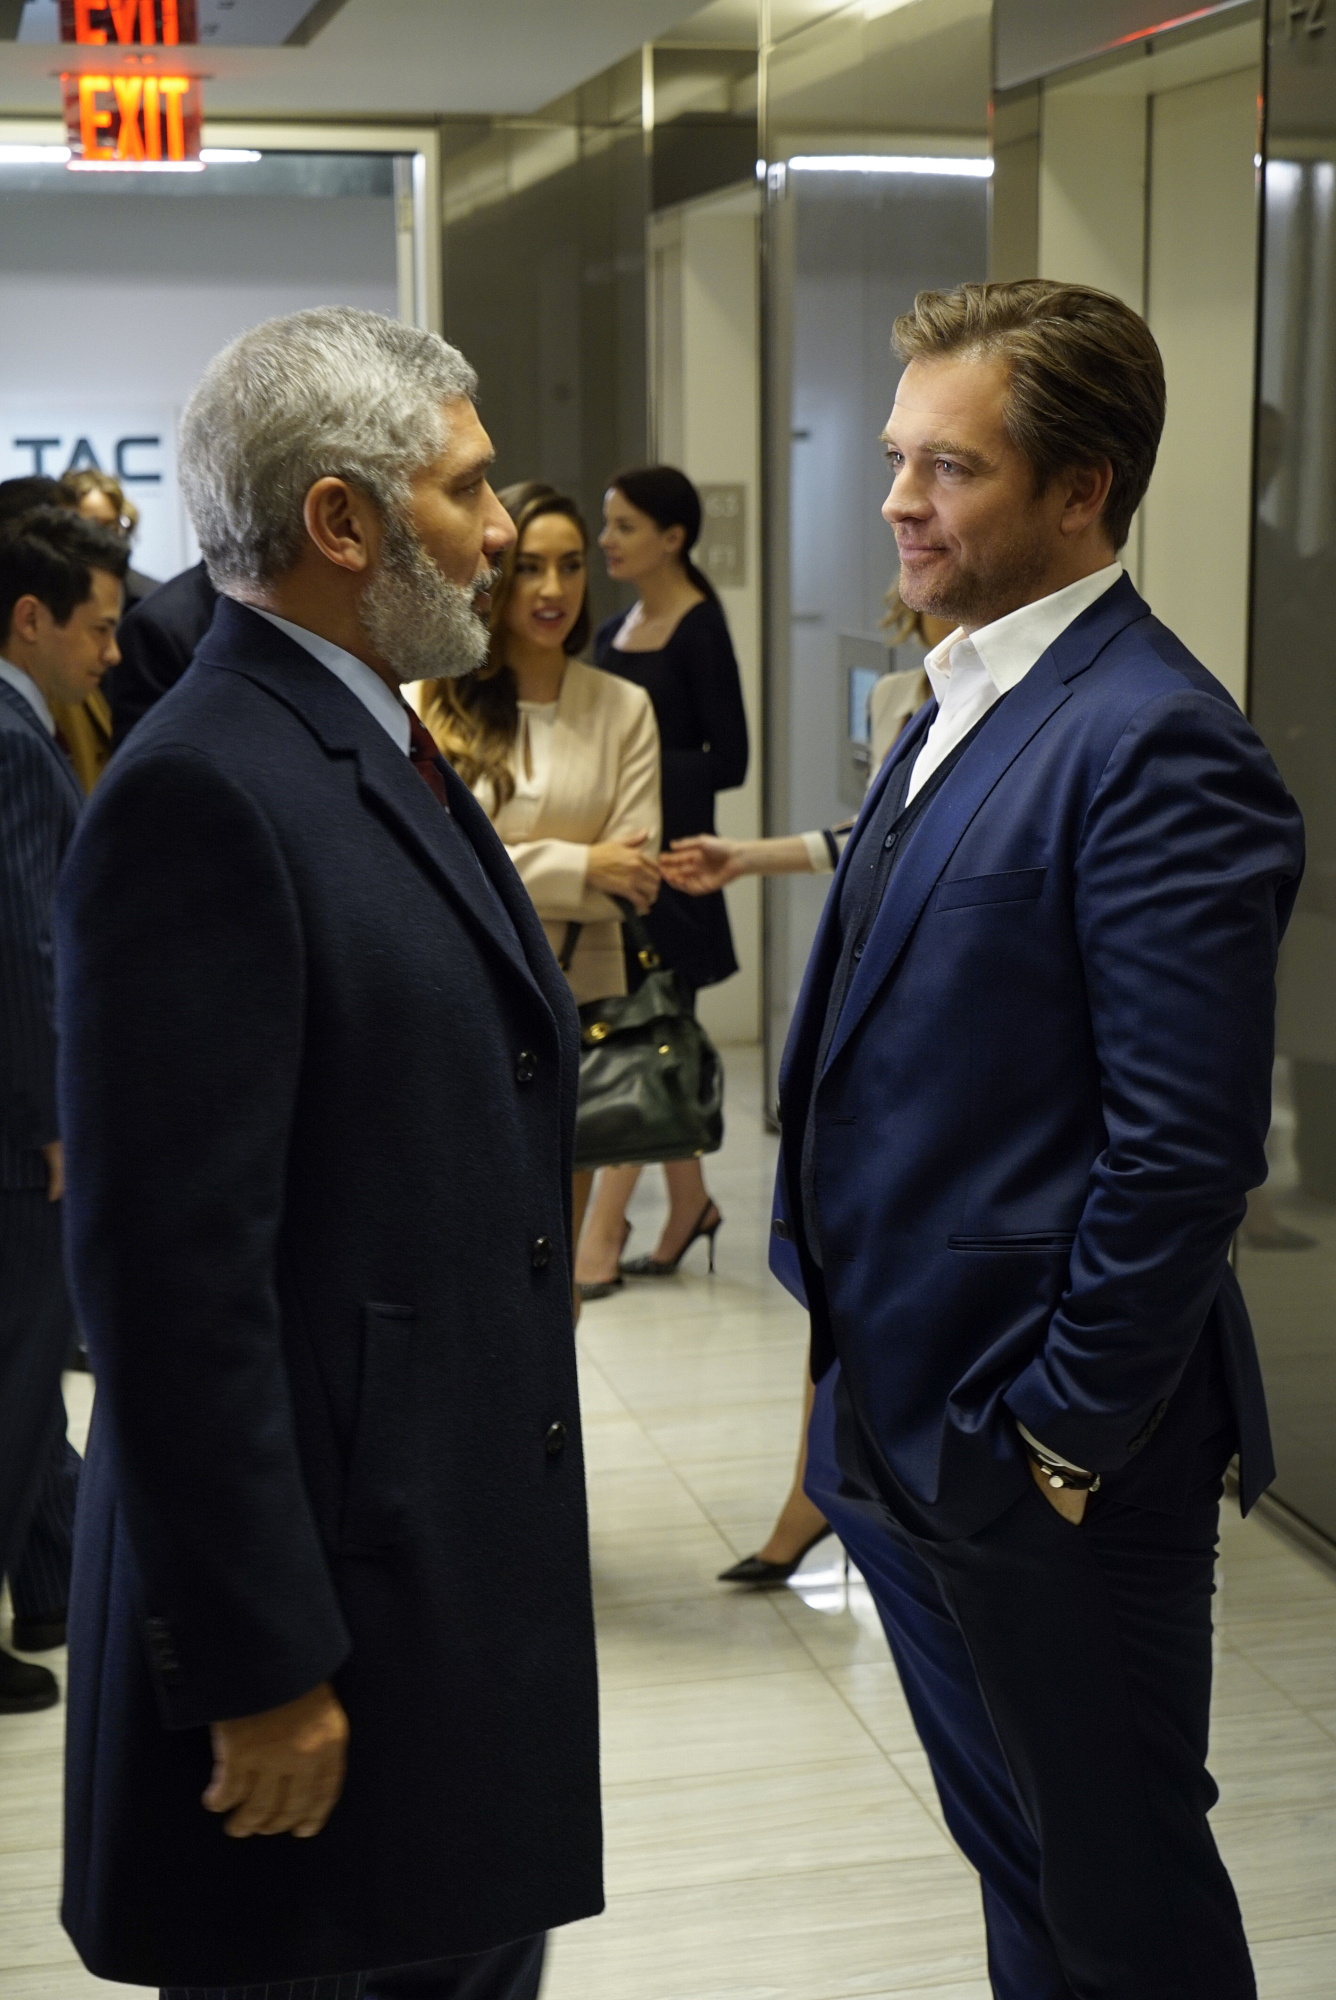 Dr. Bull meets with his client's lawyer in the hallway.